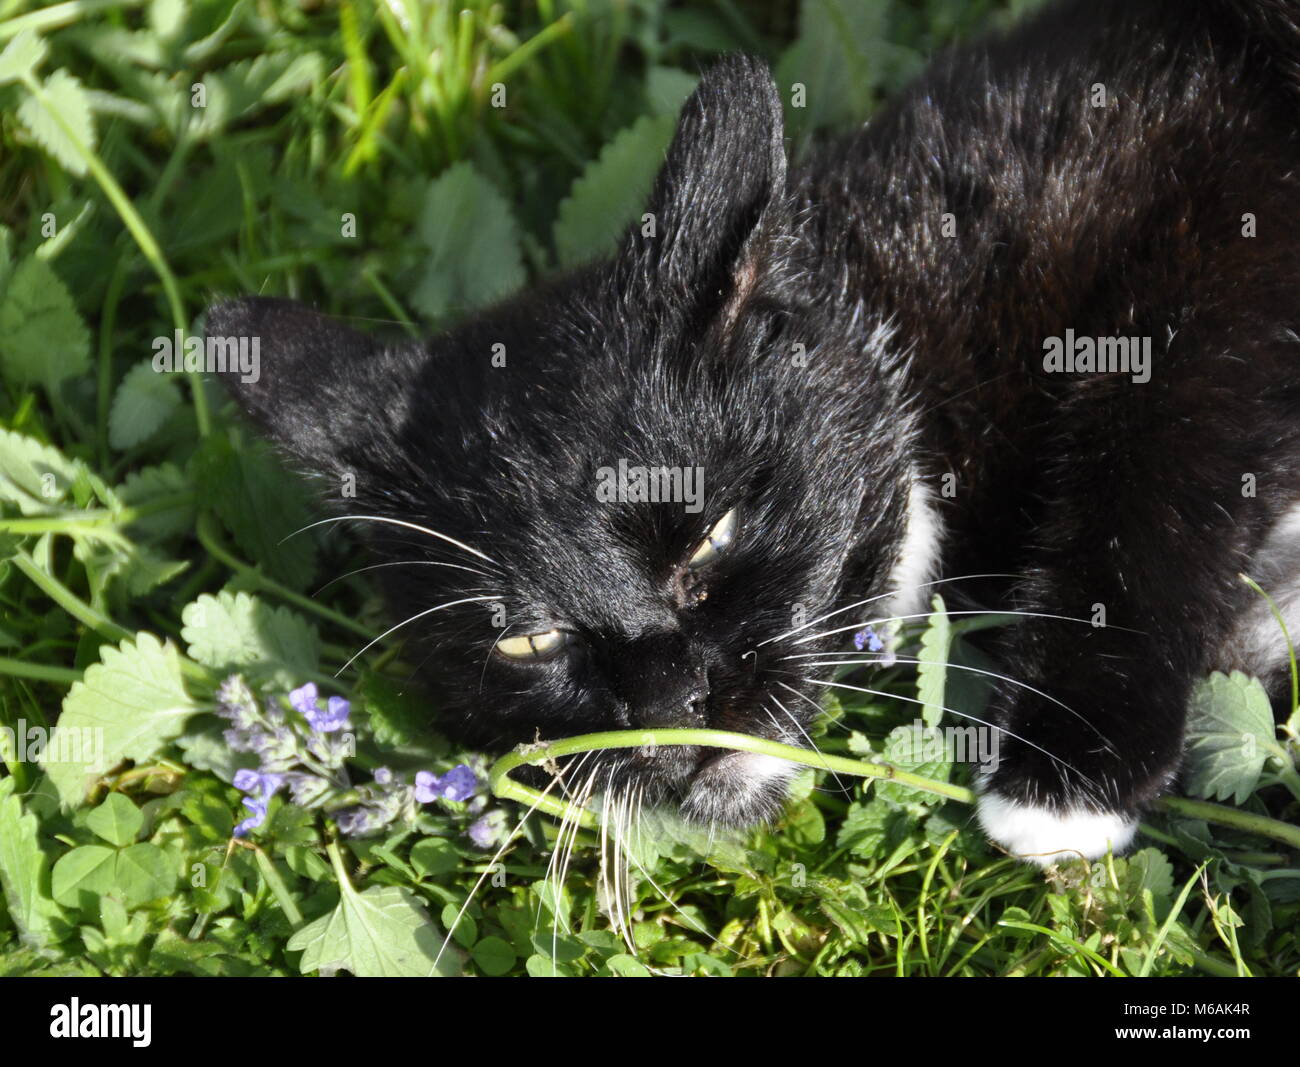 Cat euphorically from smelling catnip - Stock Image